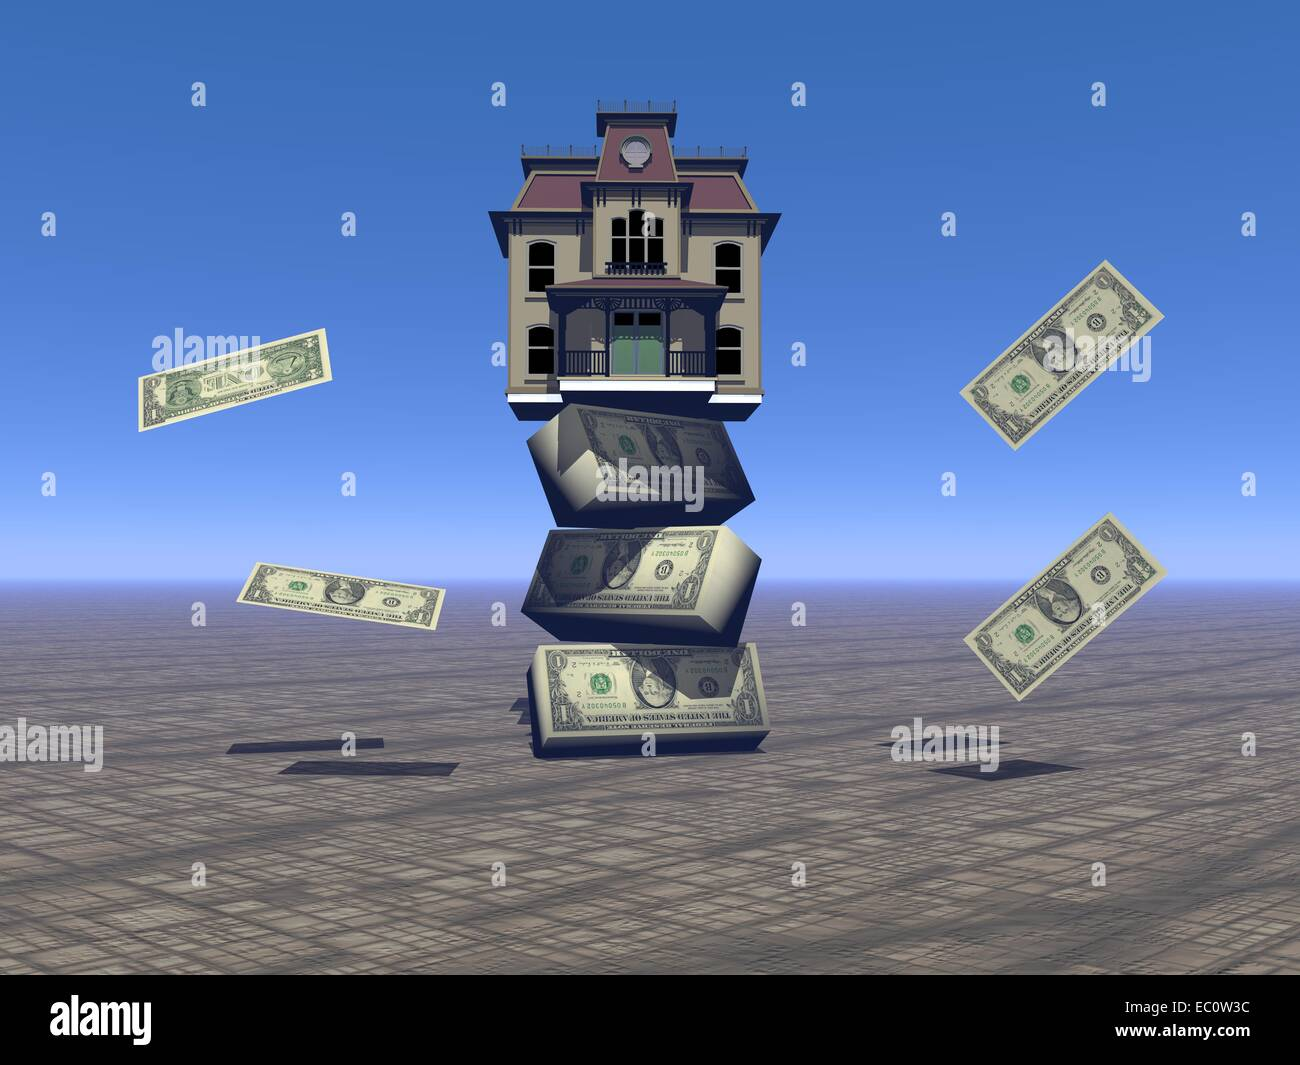 house and money sky blue - Stock Image